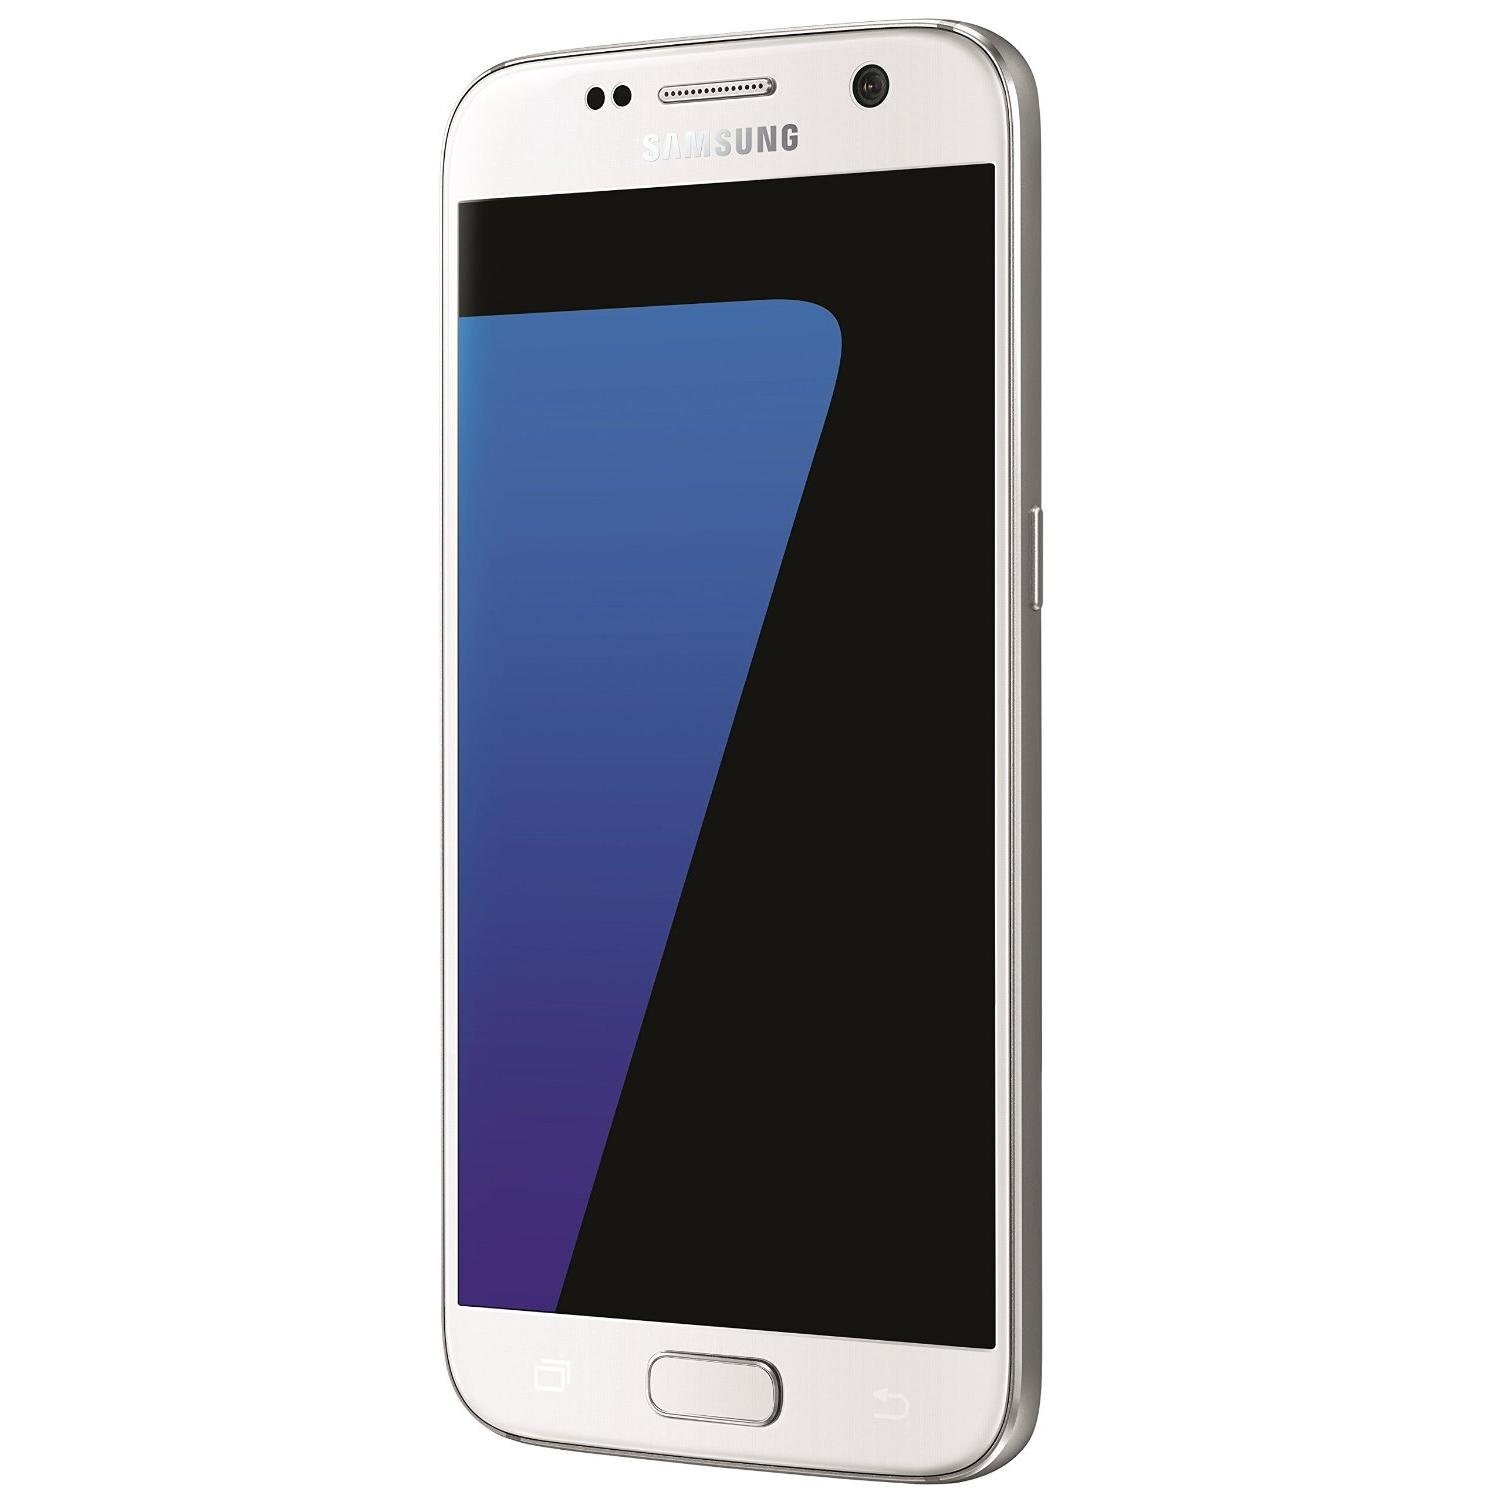 Samsung Galaxy S7 32 GB - Blanco - Libre